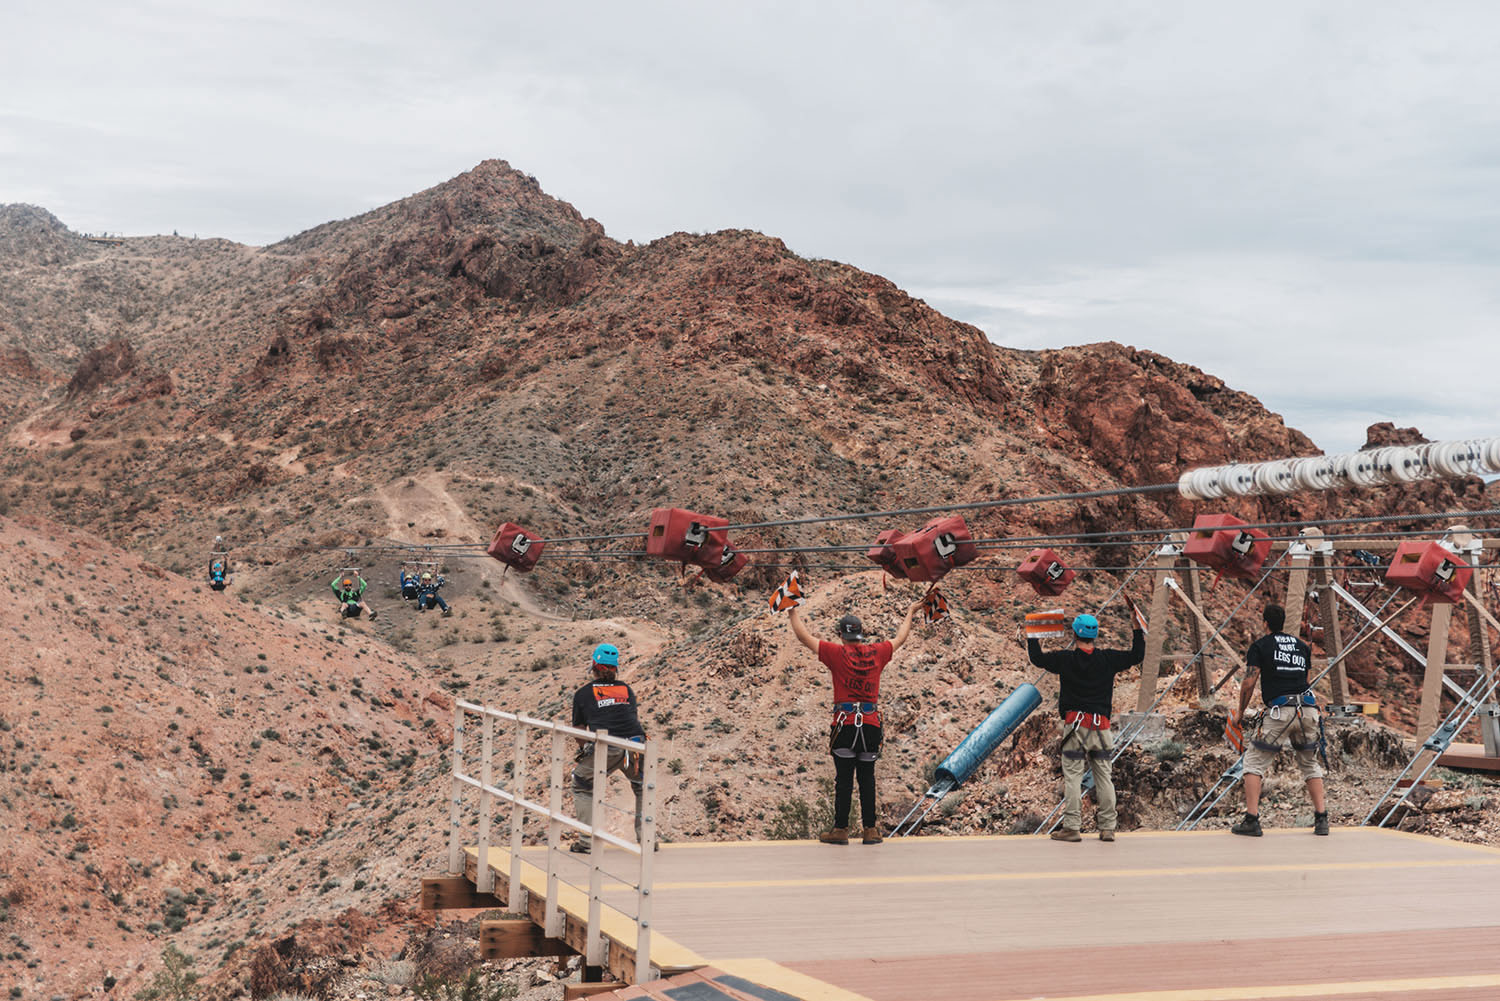 Las Vegas Zipline-Bootleg Canyon Flightlinez Adventure